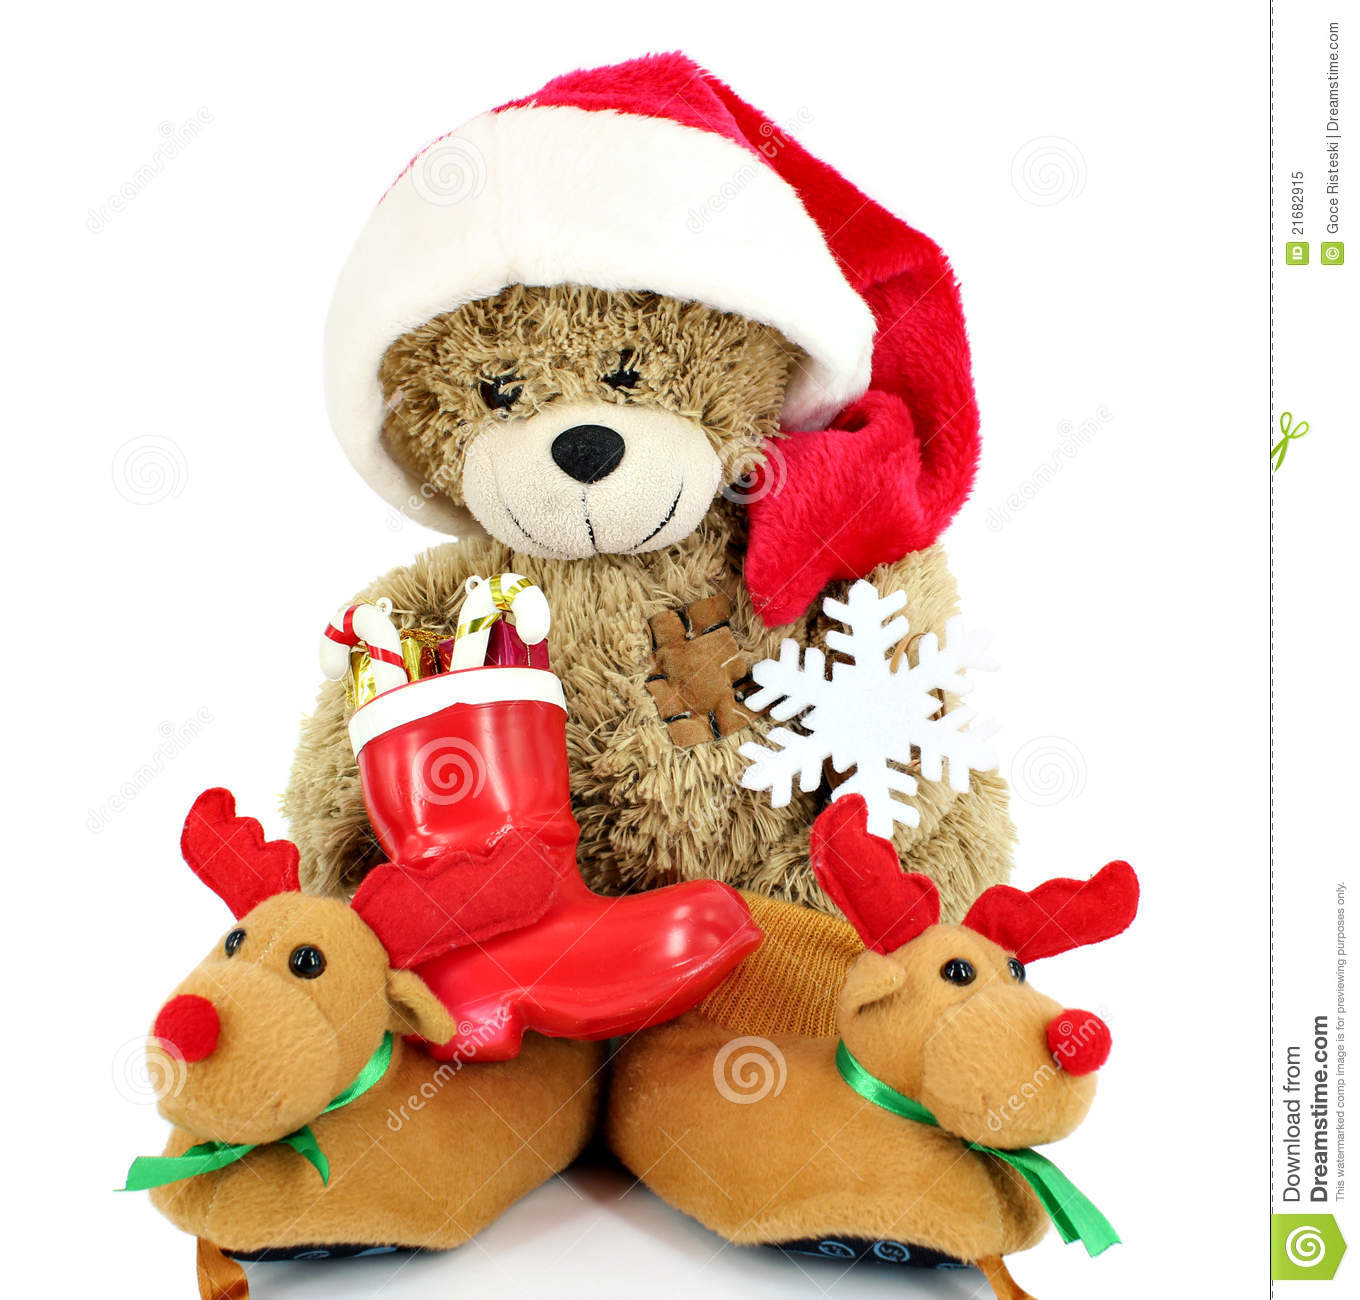 Ours de nounours le p re no l photo libre de droits image 21682915 - Nounours noel ...